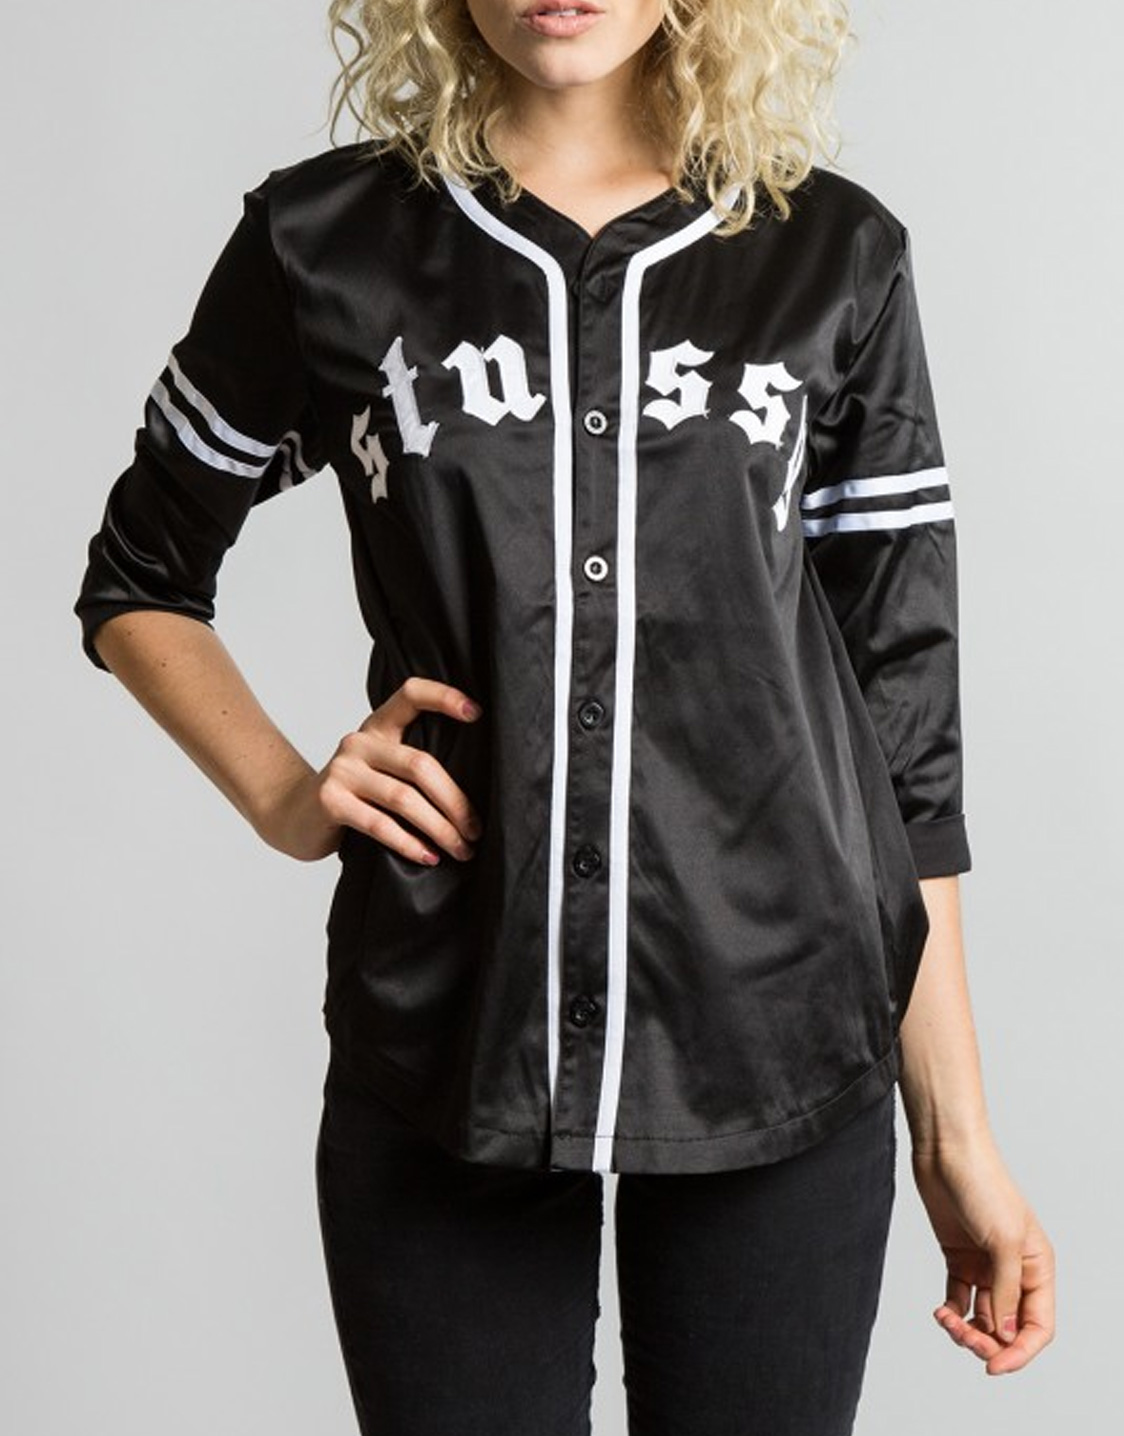 Stussy satin baseball shirt